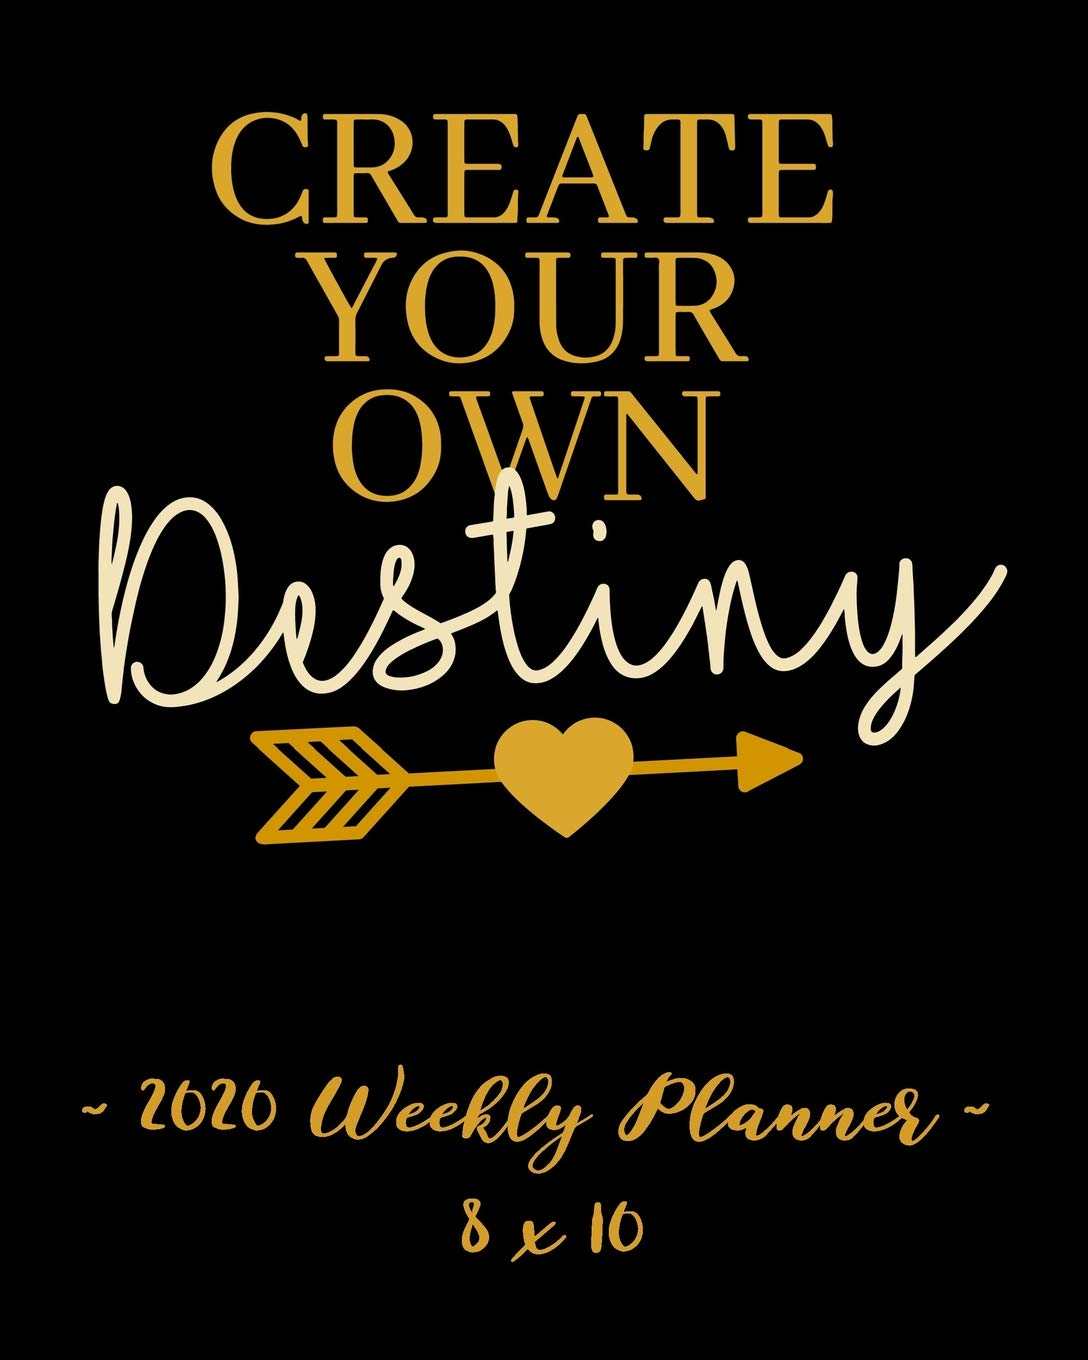 Create Your Own Calendar 2020 2020 Weekly Planner   Create Your Own Destiny: 8 x 10   12 Month